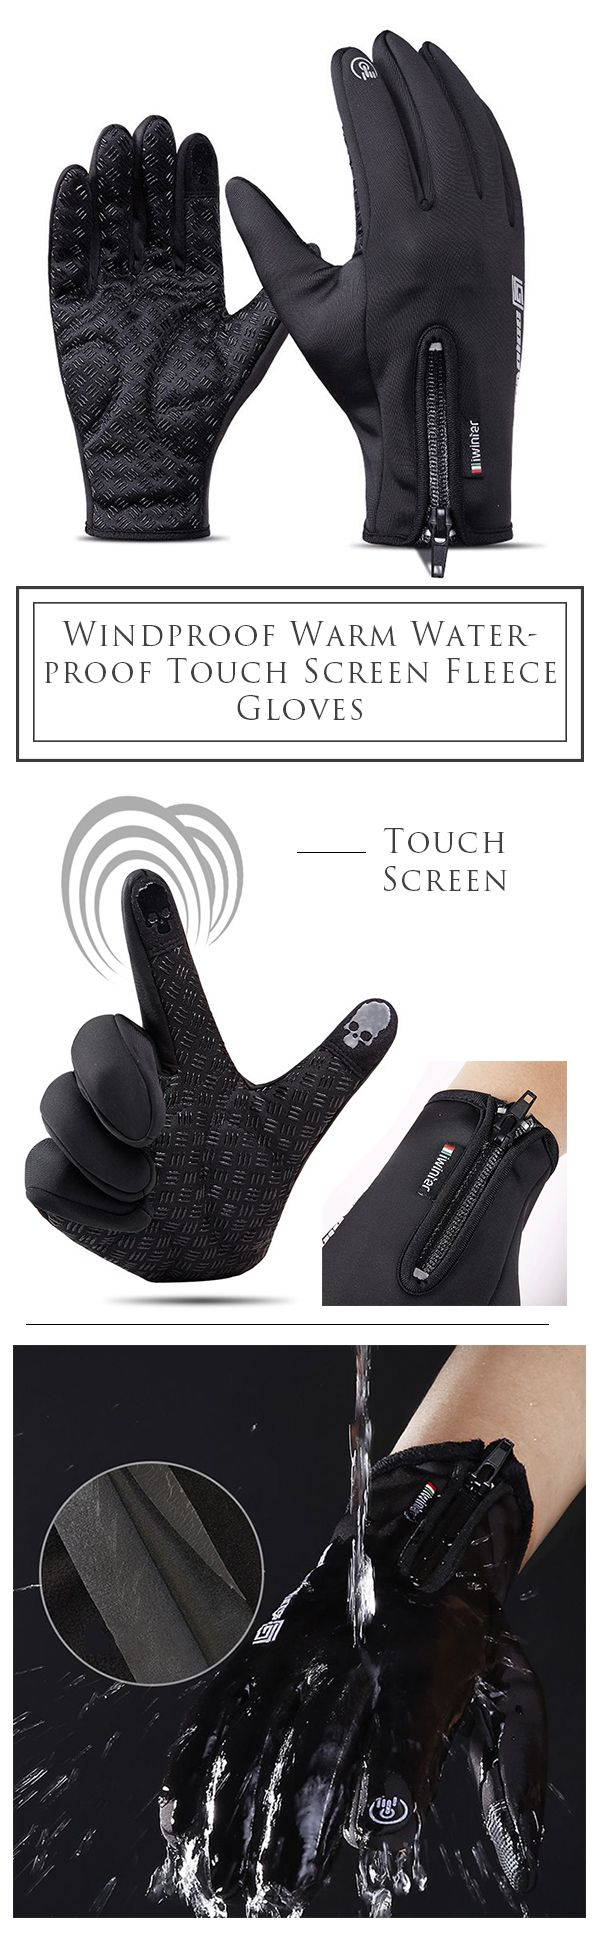 Men&Women Outdoor Gloves: Touch Screen/ Windproof /Cycling